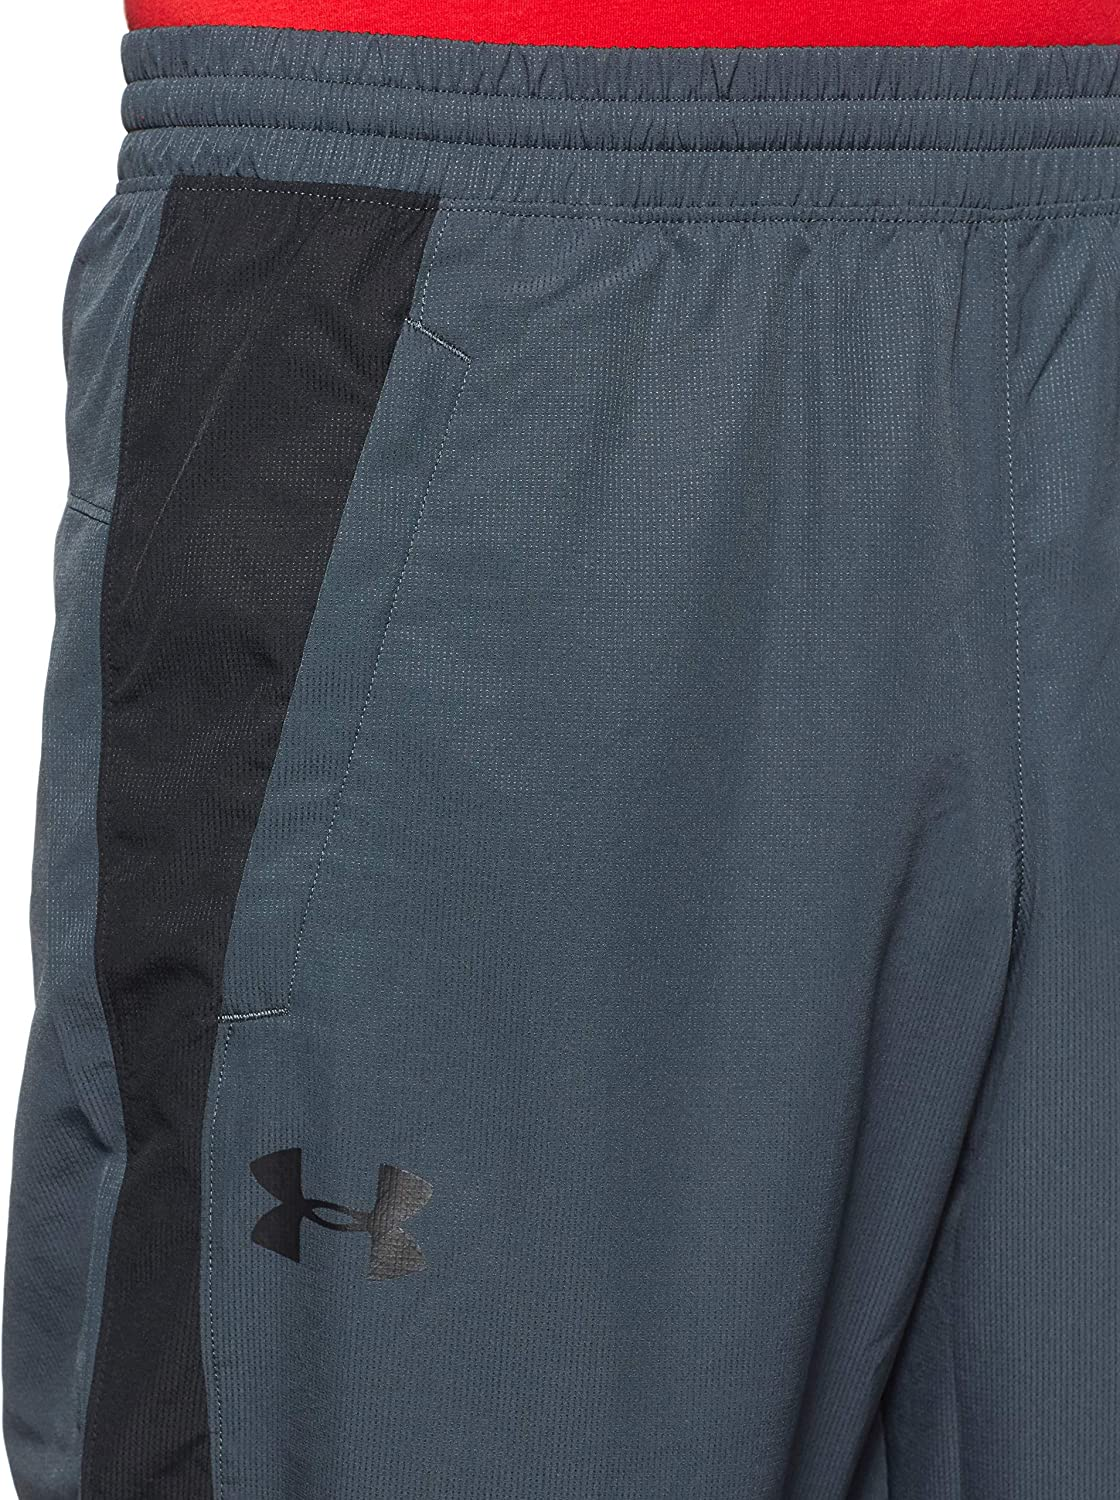 Under Armour Mens Sportstyle Woven Pants